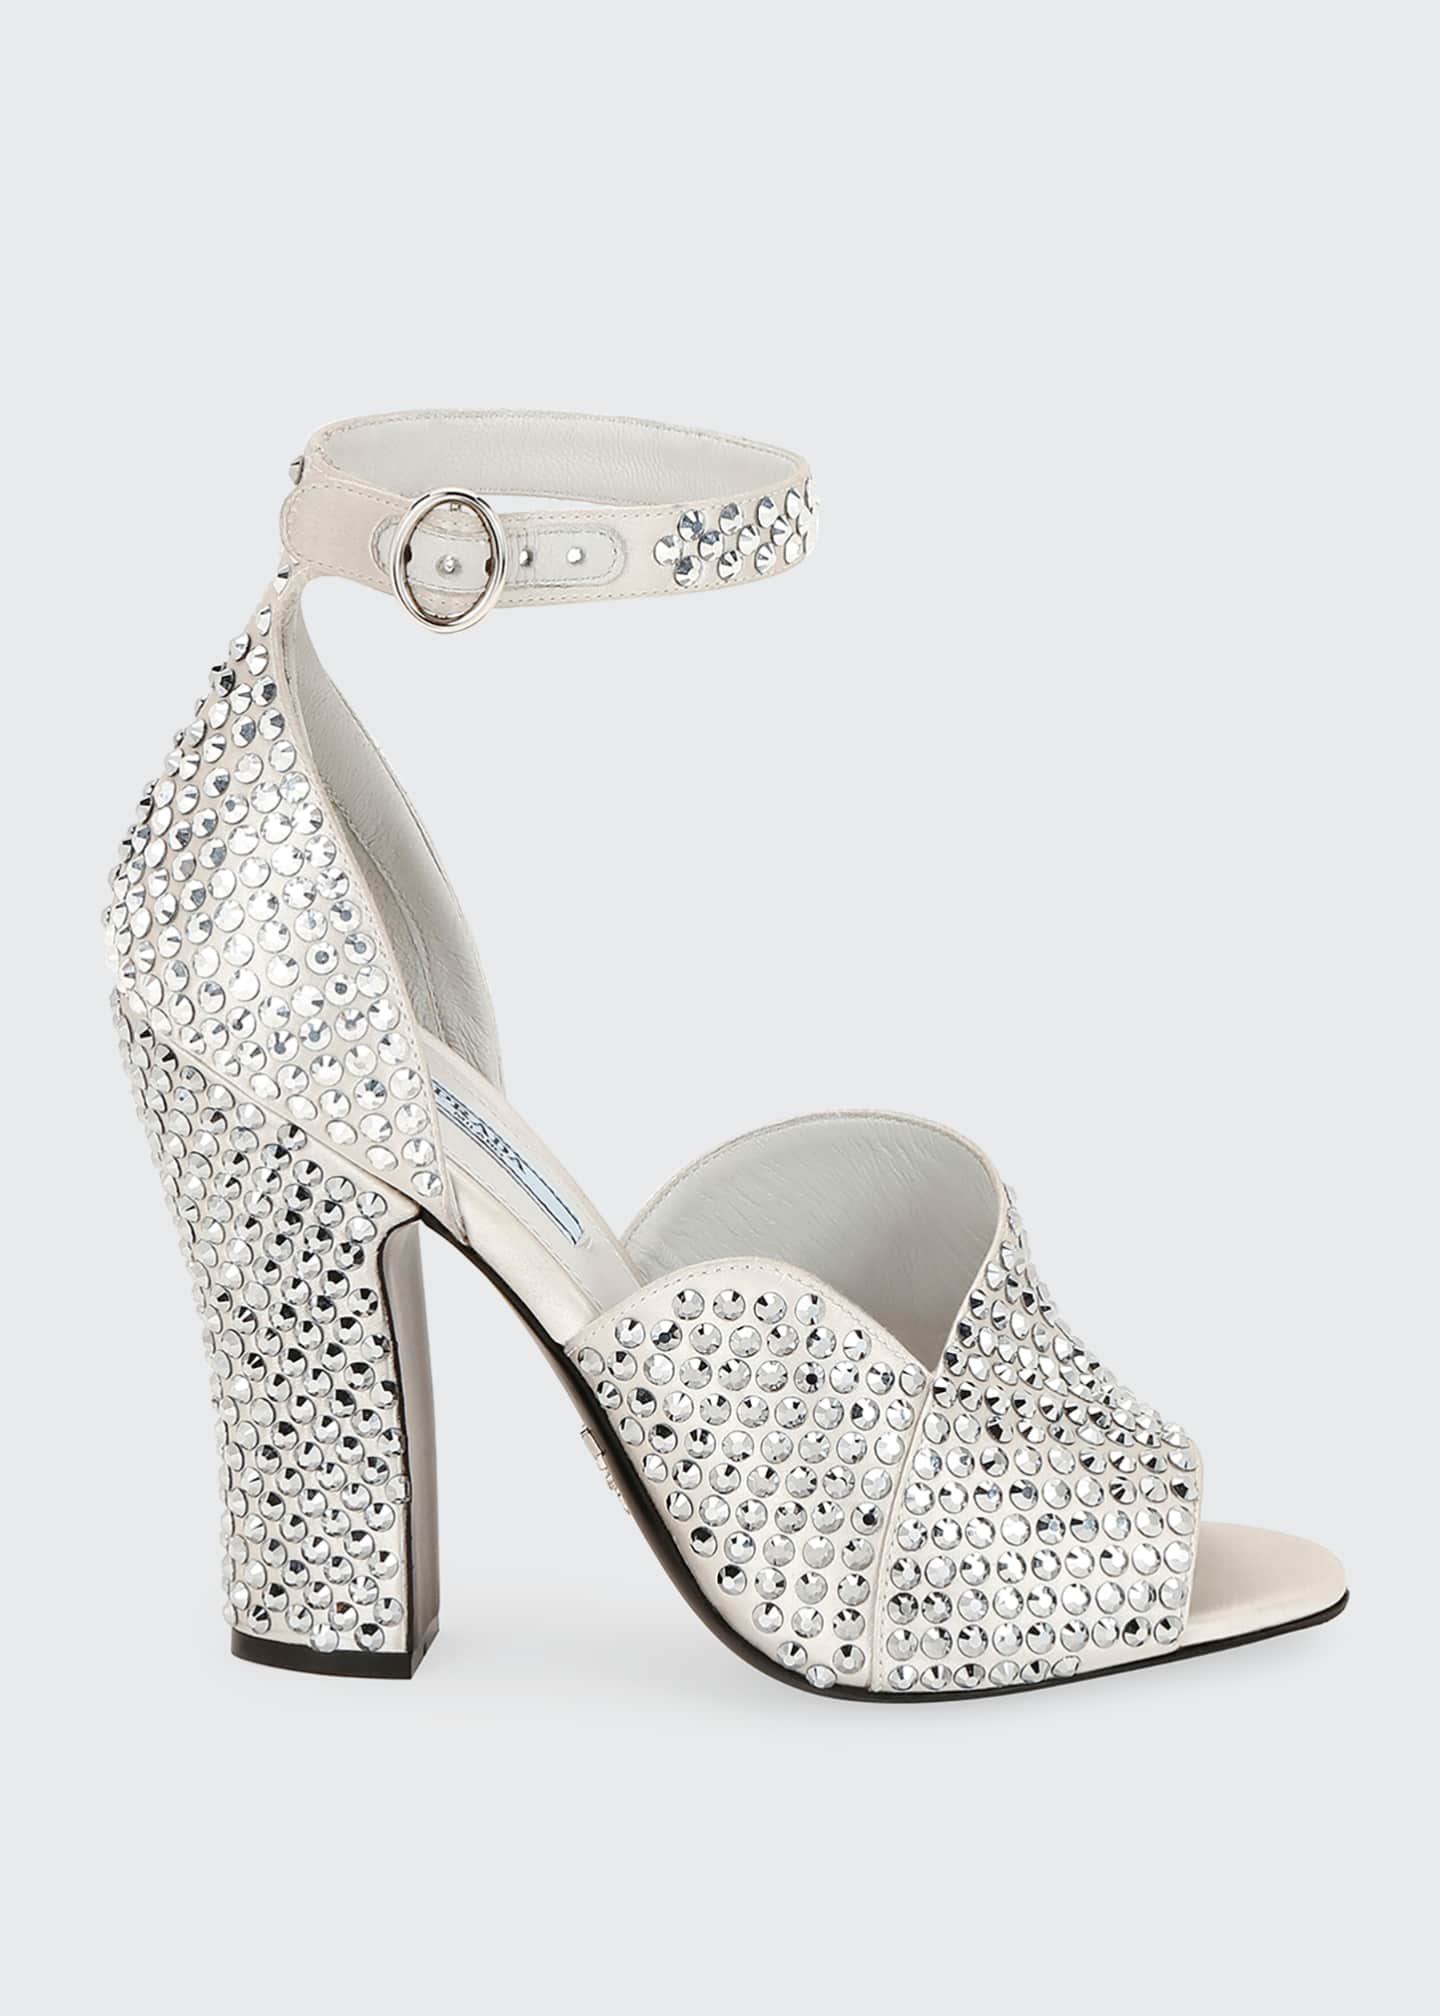 Prada Crystal Satin Ankle-Strap Sandals